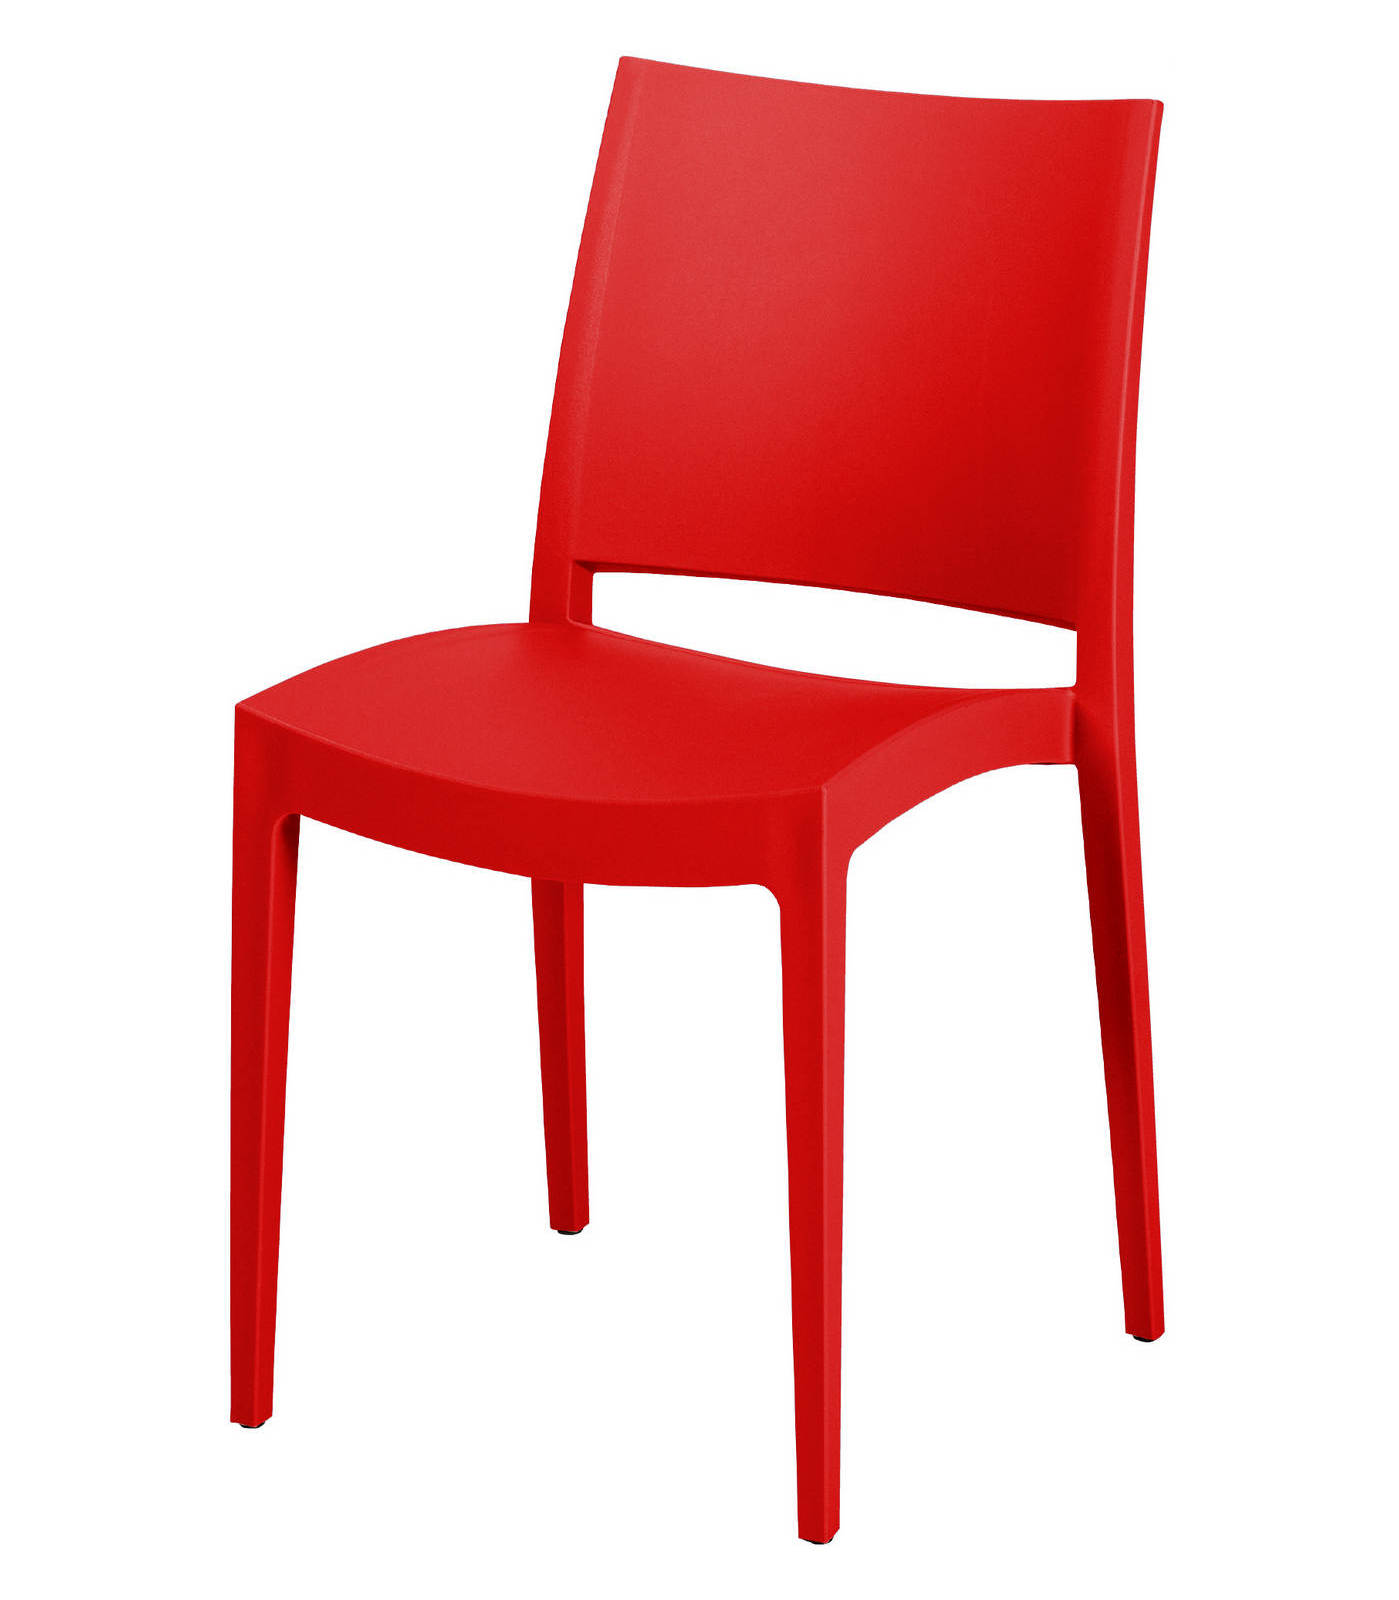 Red Chair Clipart.